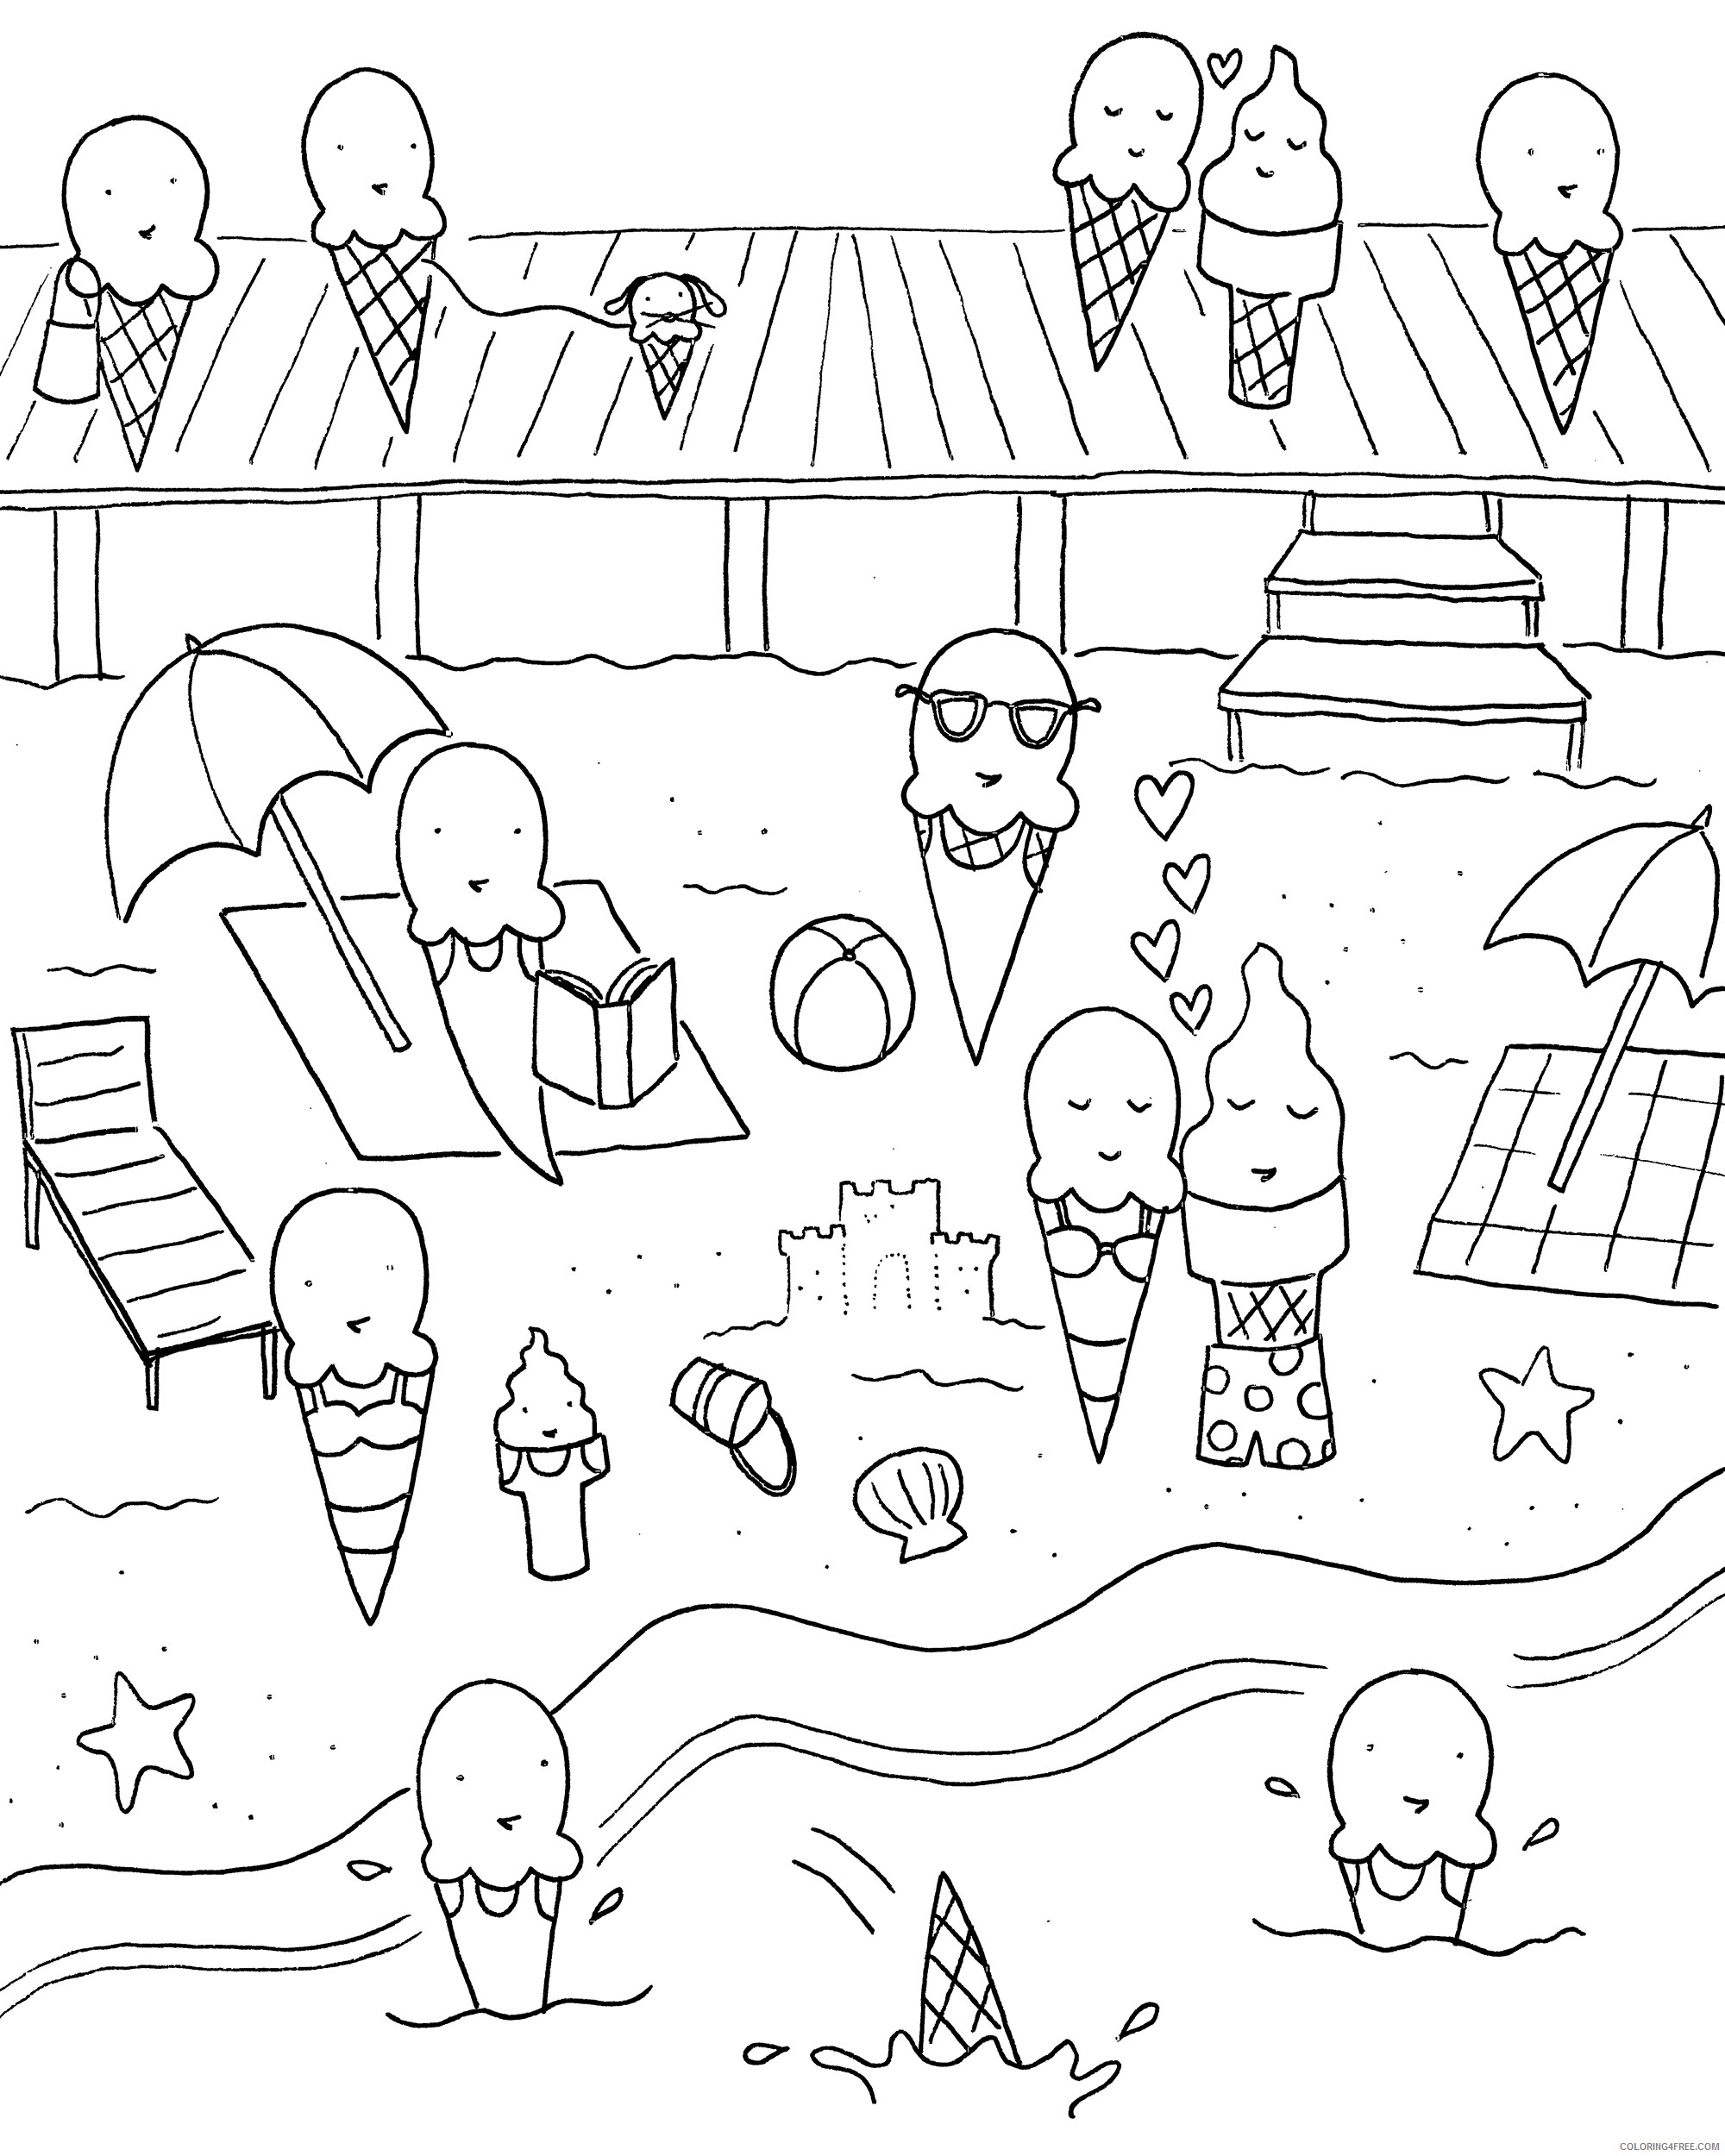 Ice Cream Coloring Pages for Kids Ice Cream Beach Party Printable 2021 369 Coloring4free